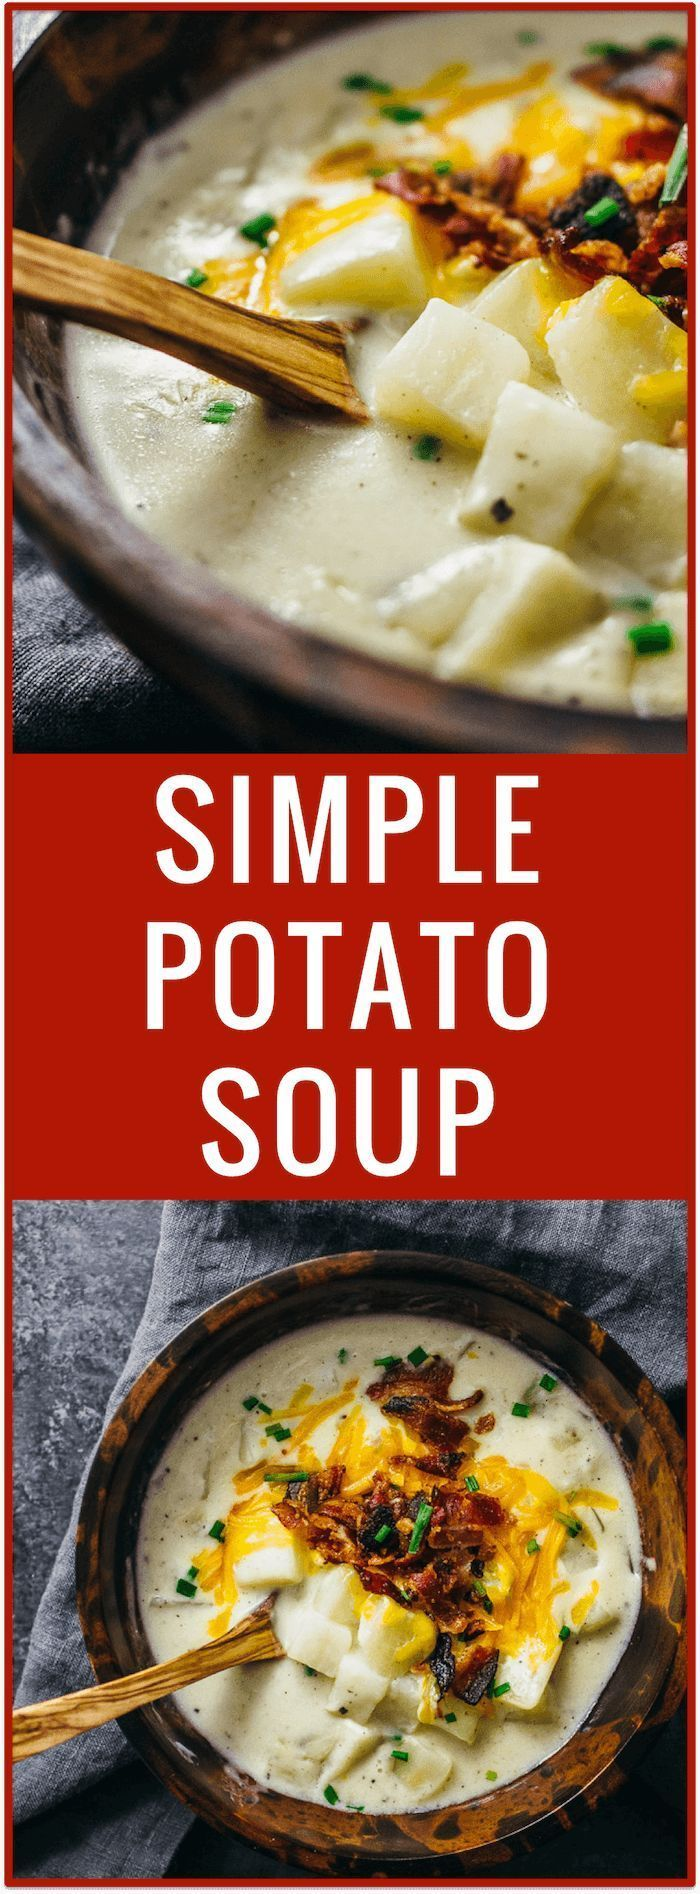 Creamy potato soup with bacon and cheddar | Cheesy potato soup | Simple potato soup | Comfort food | One pot dinner | Easy recipe via /savory_tooth/